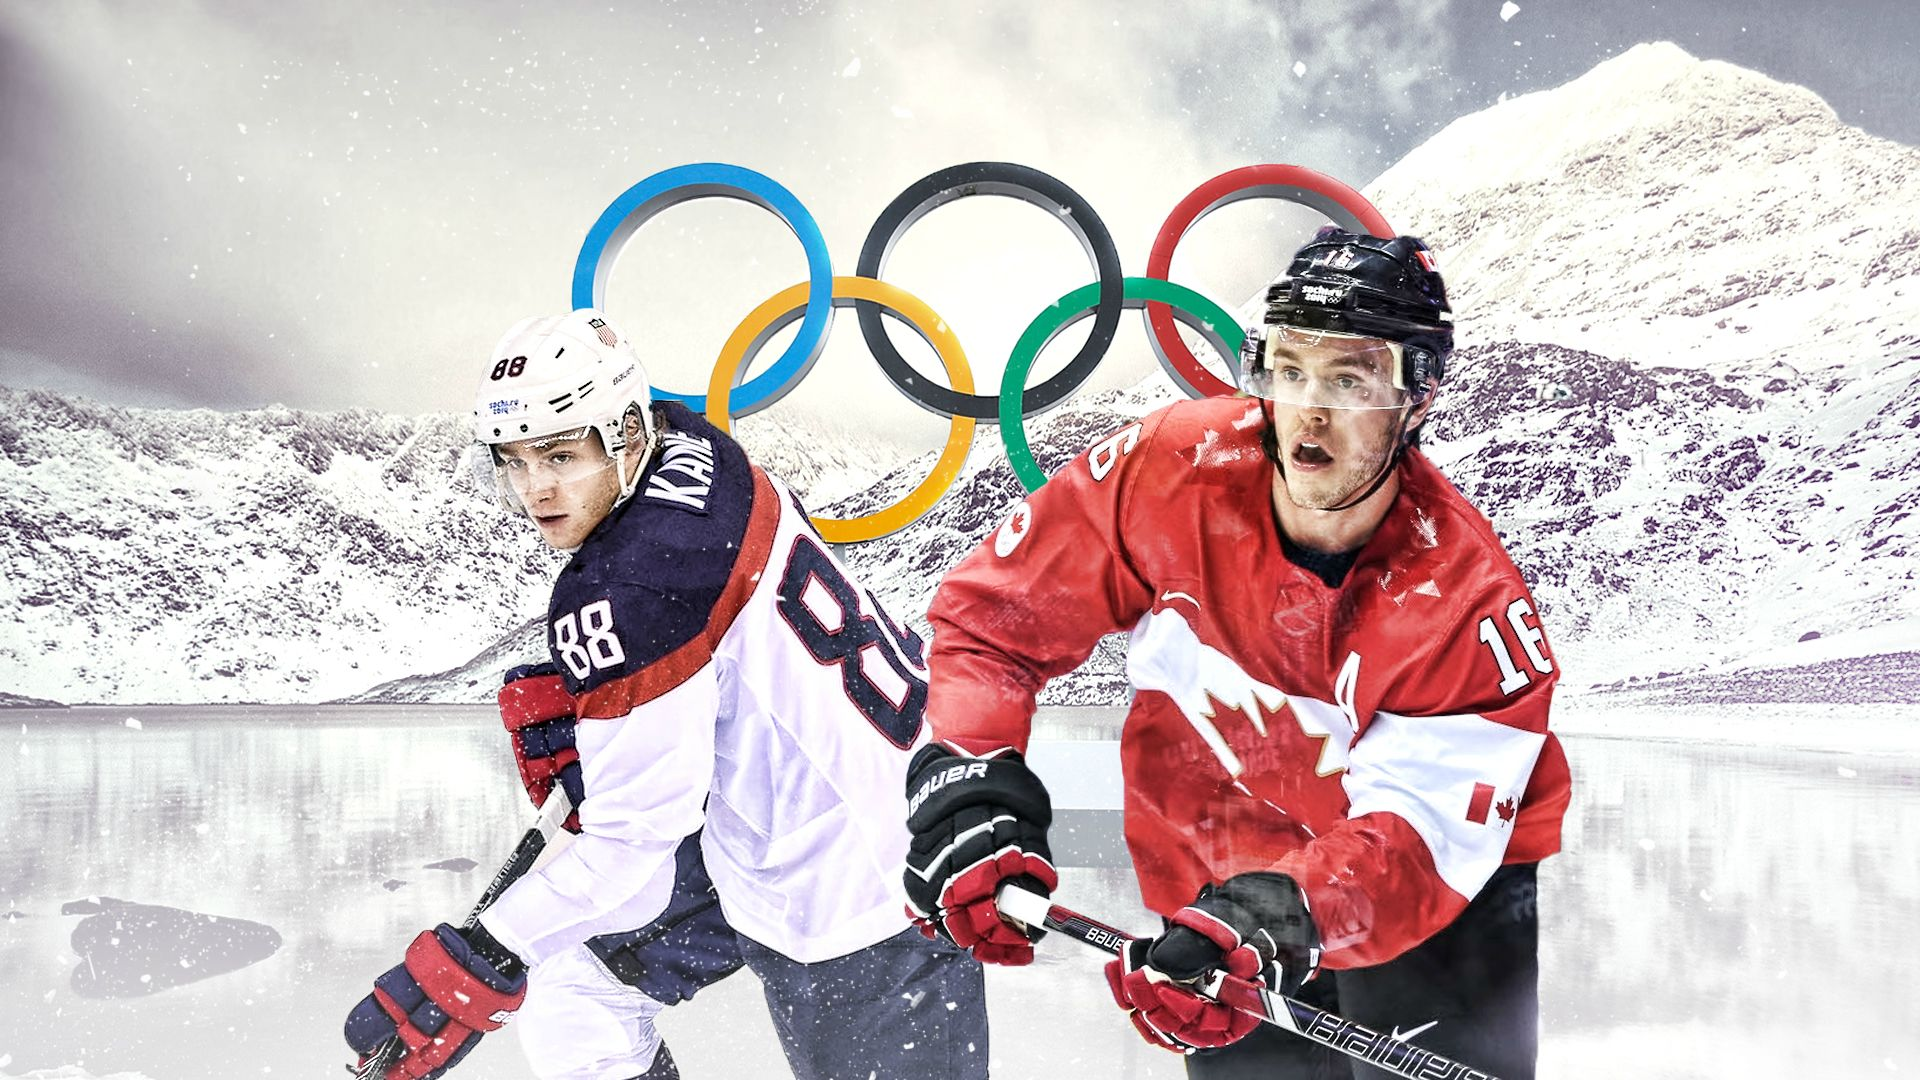 Olympics in Vancouver- Kind of makes you Homesick!